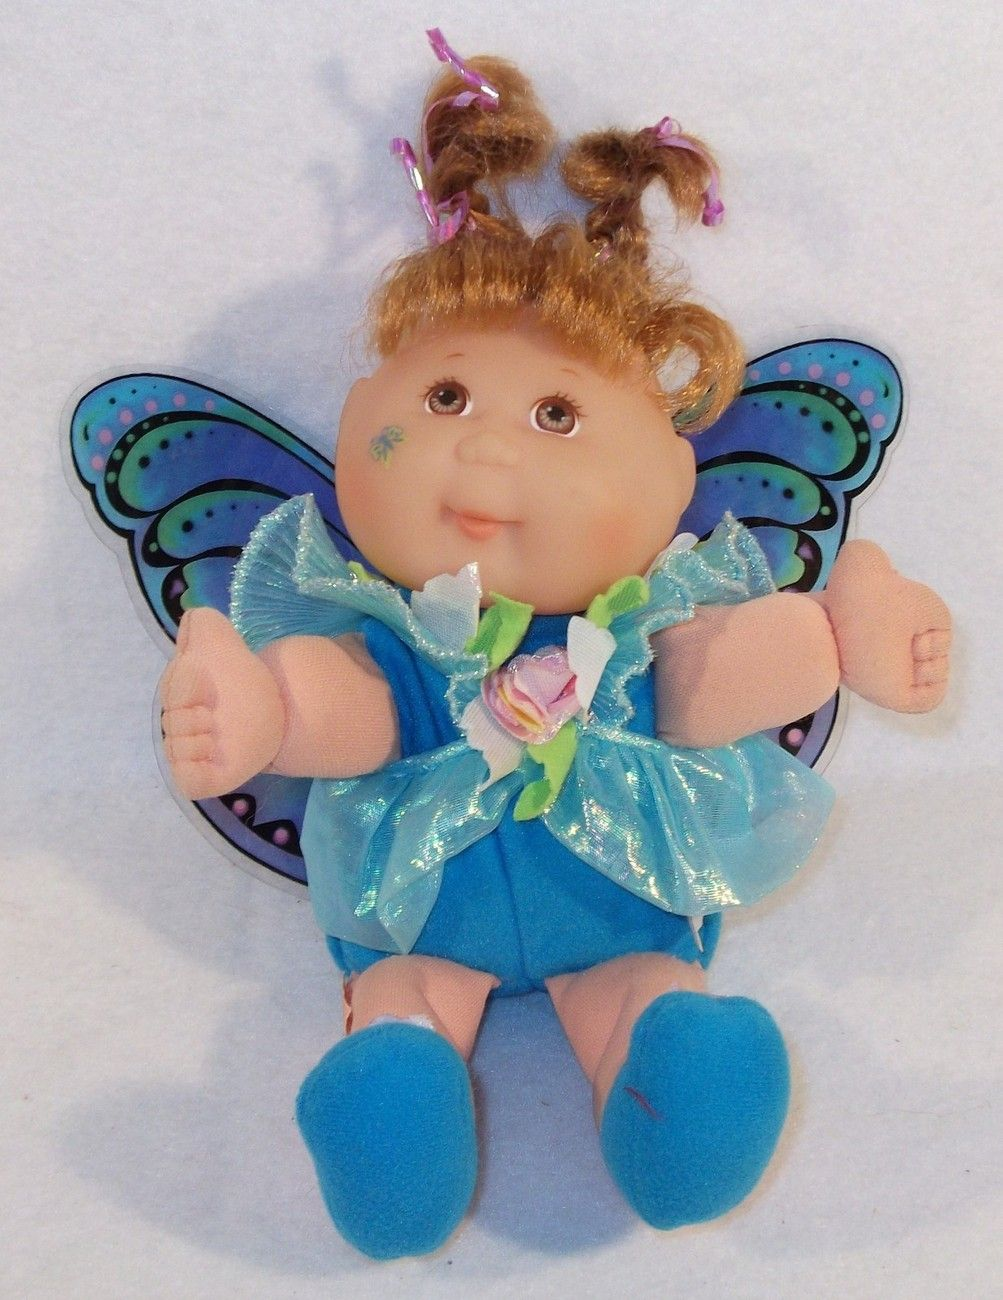 Bonanza Find Everything But The Ordinary Cabbage Patch Kids Dolls Cabbage Patch Dolls Cabbage Patch Kids